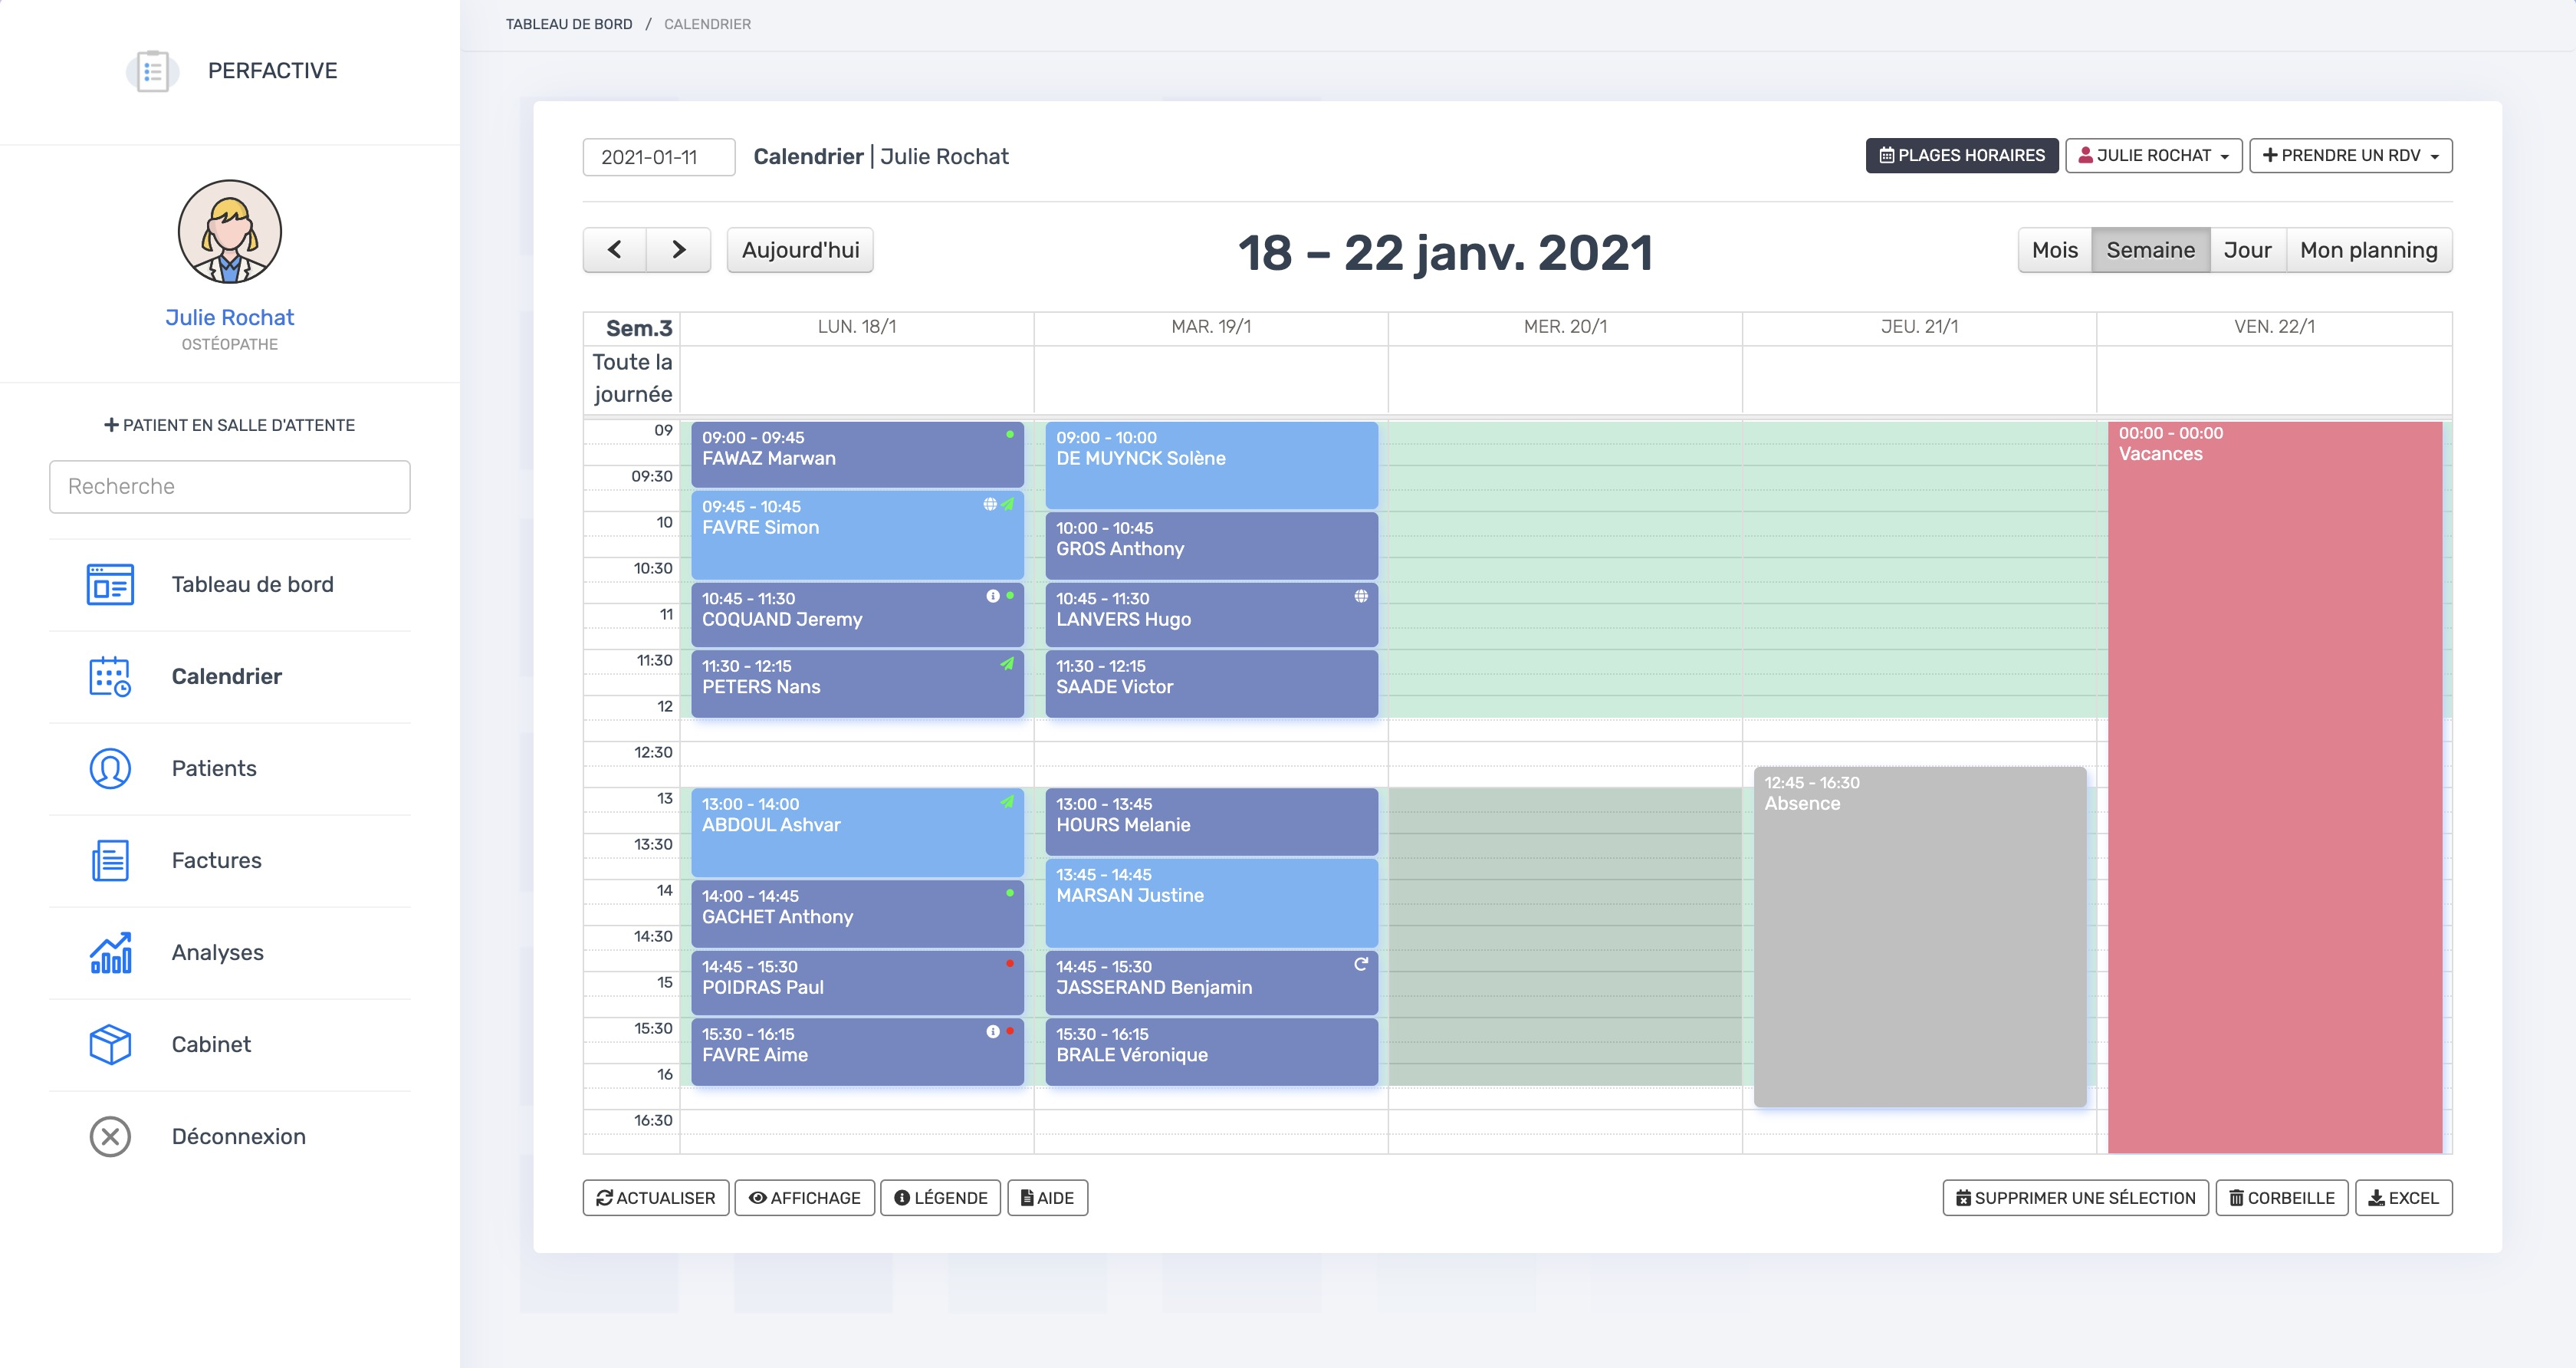 Le calendrier | PERFACTIVE